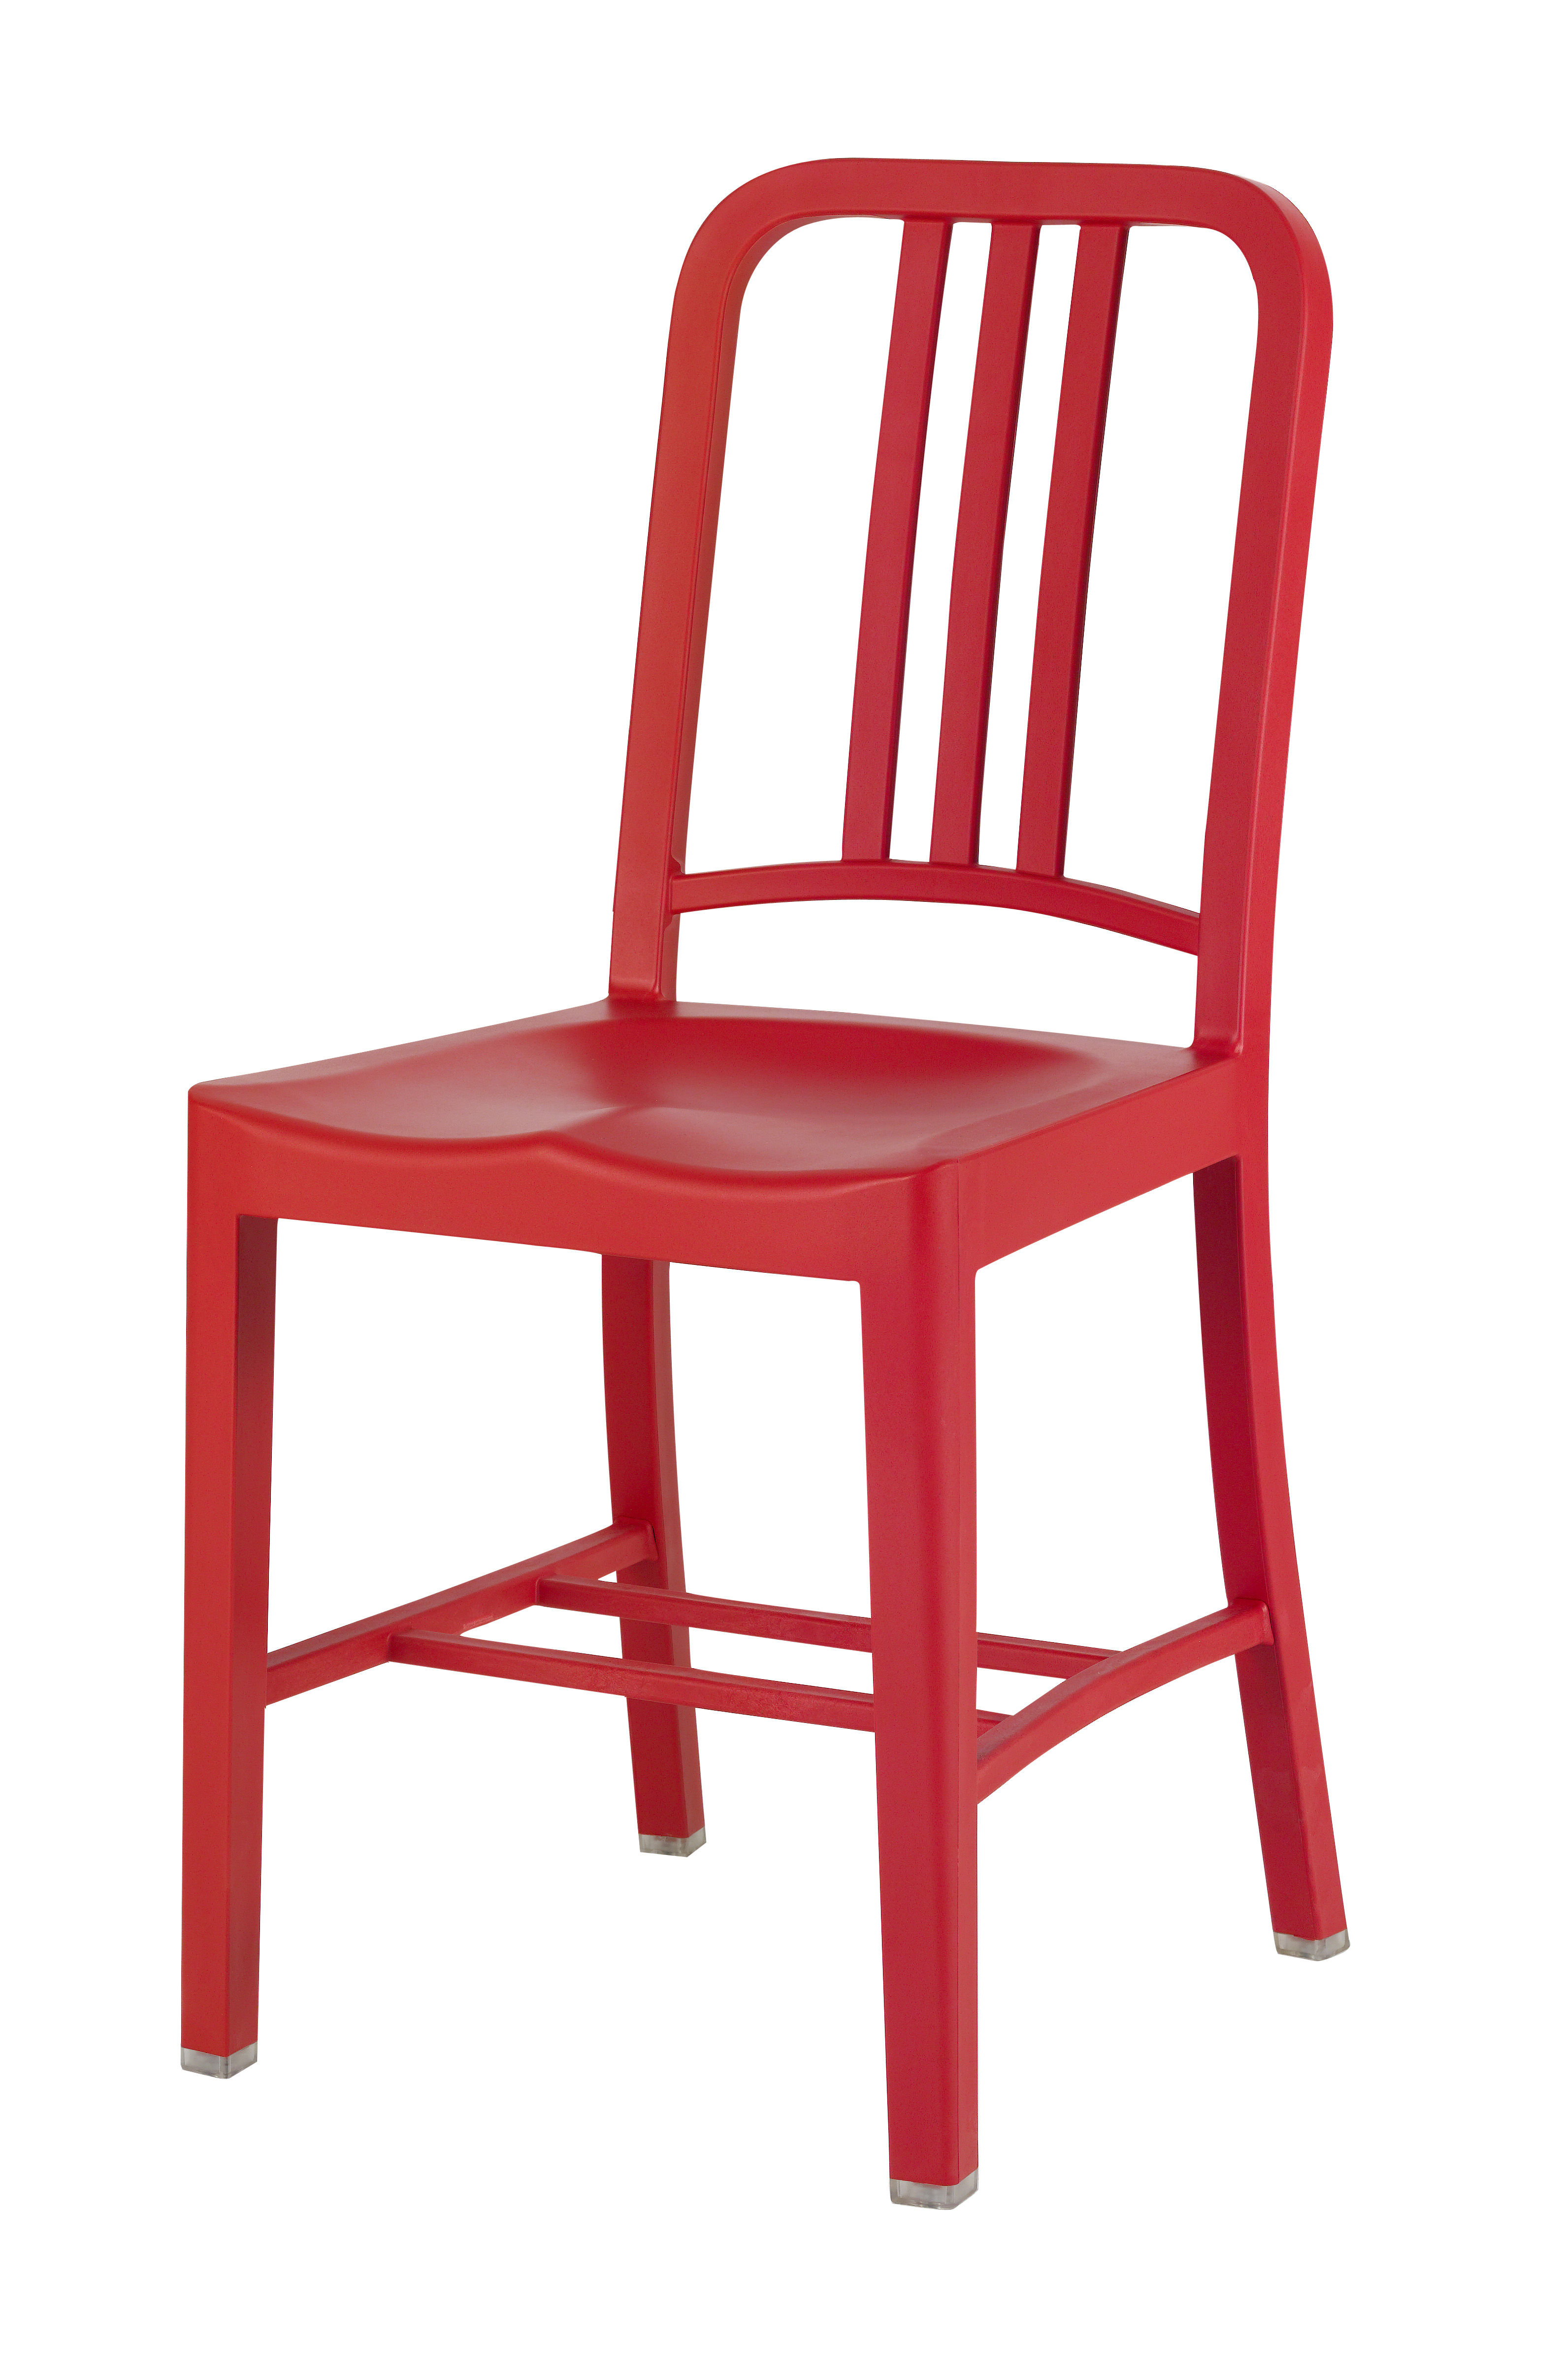 Furniture - Chairs - 111 Navy chair Chair - Recycled plastic by Emeco - Red - Fibreglass